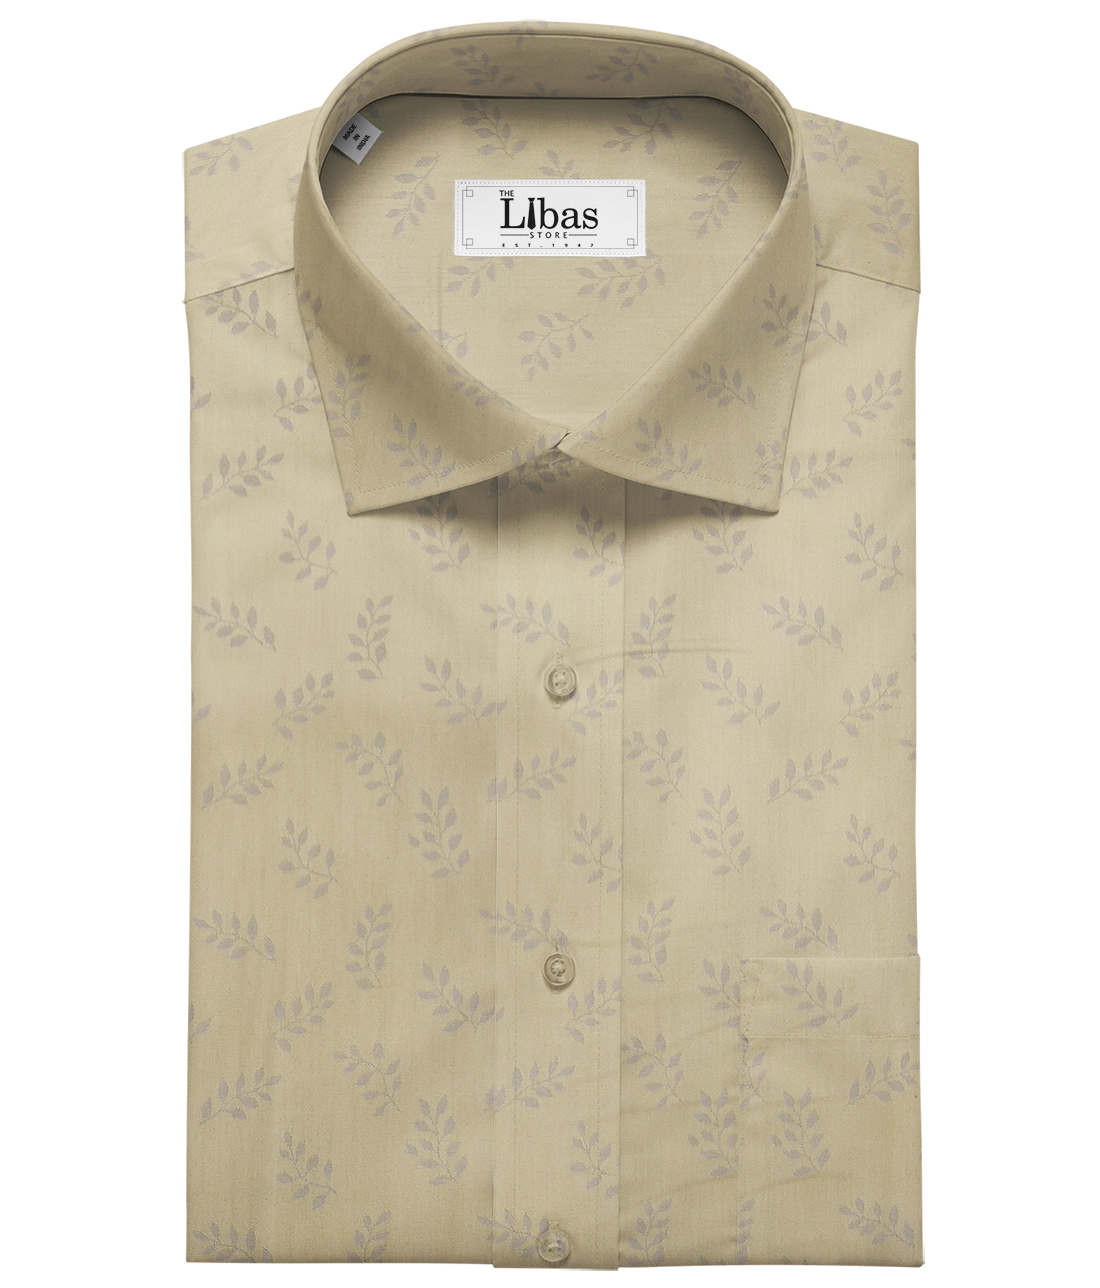 Soktas Men's Giza Cotton Floral Jacquard 1.60 Meter Unstitched Shirt Fabric (Oat Beige)